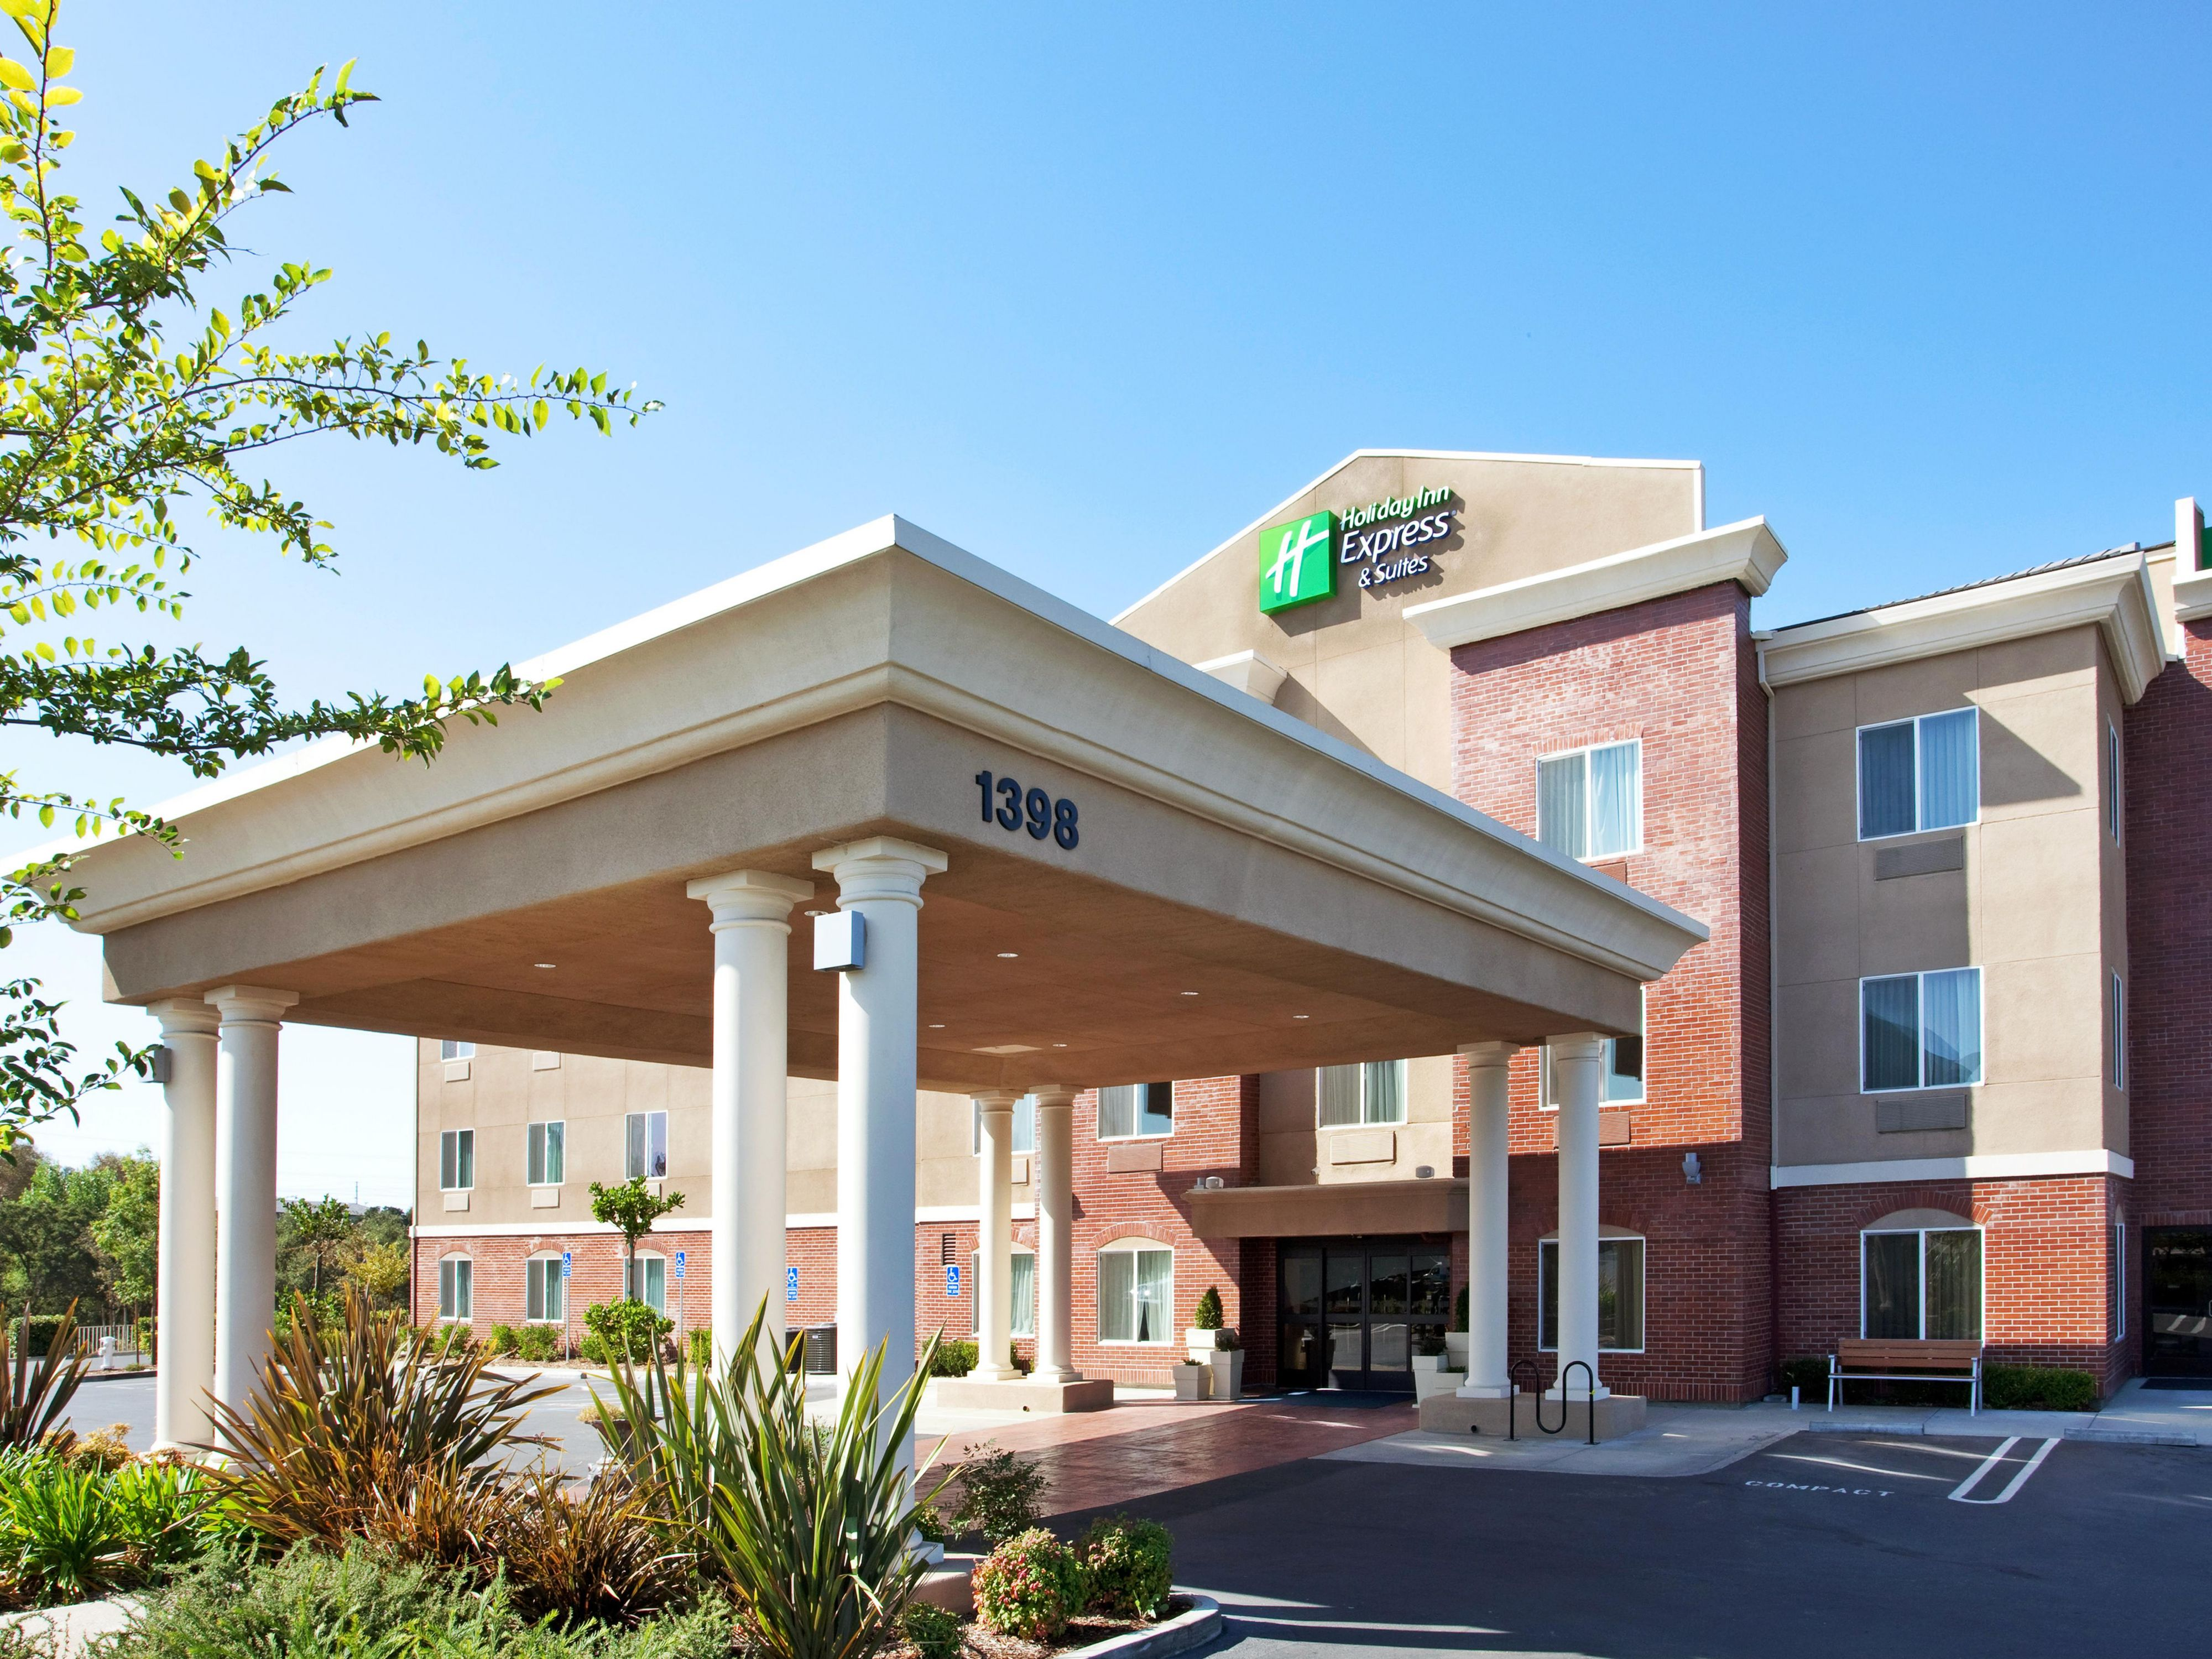 Watch the beautiful sunrise at The Holiday Inn Express Roseville